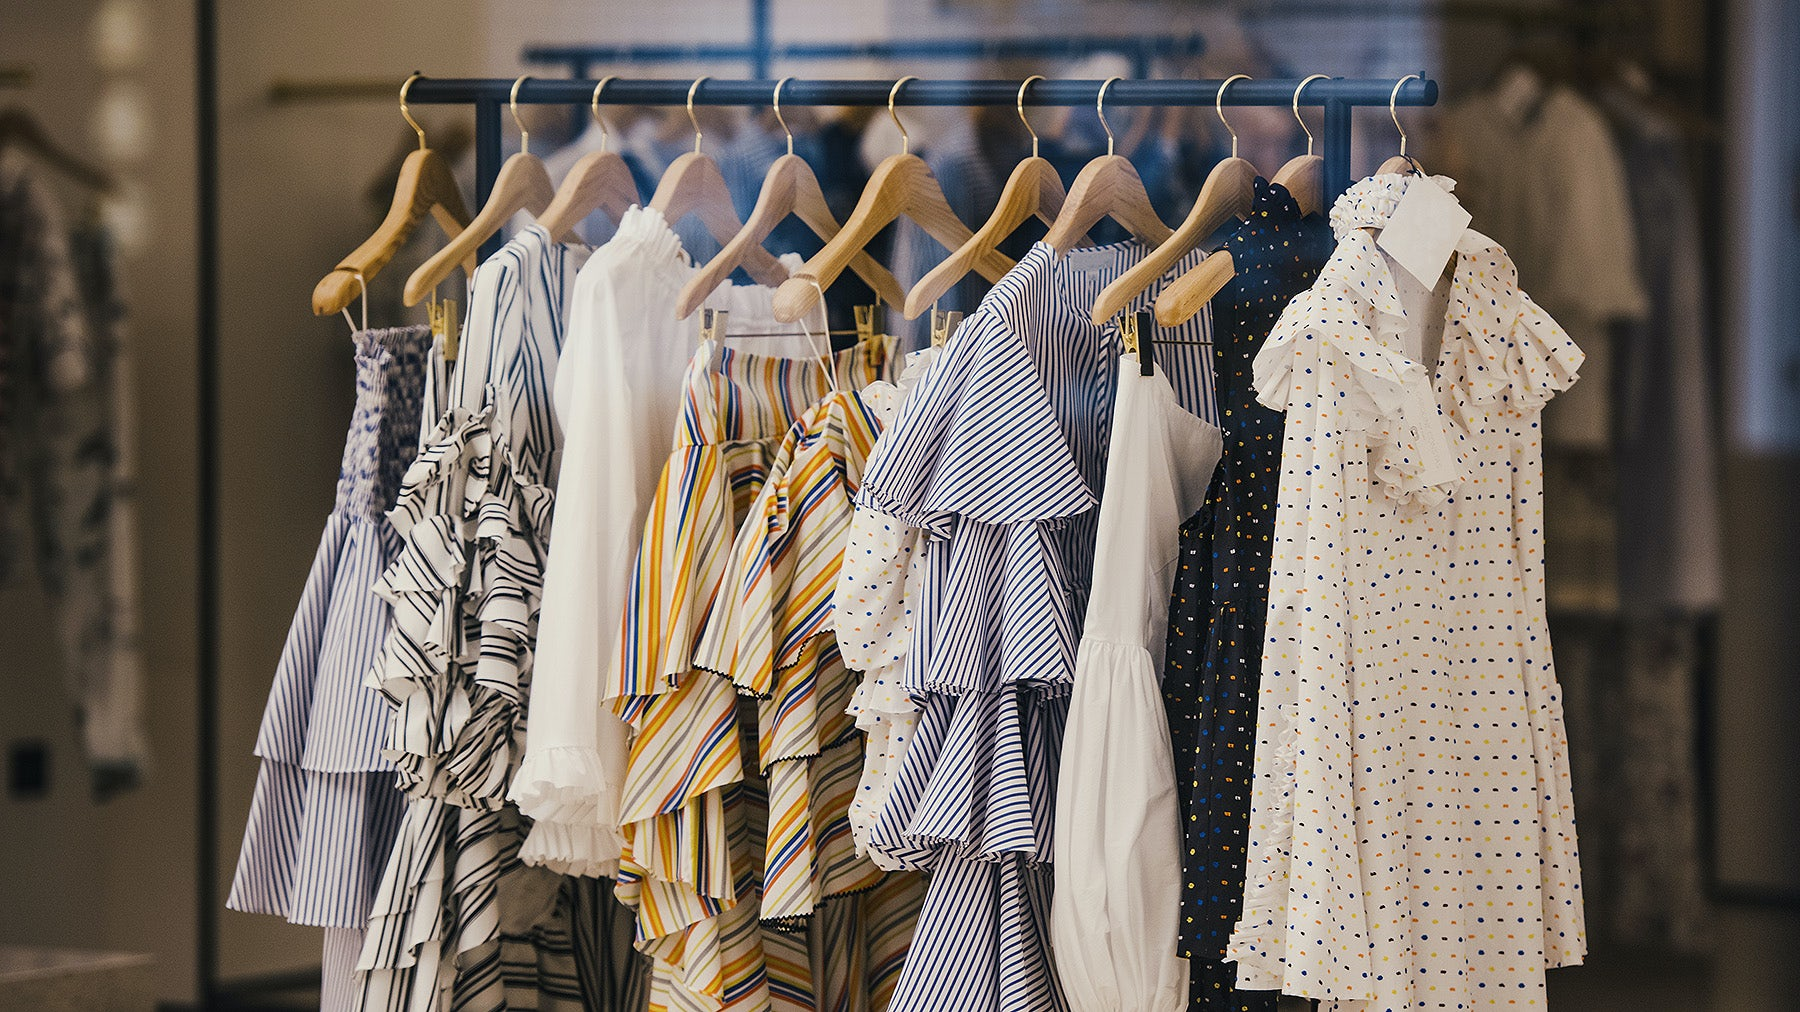 The Retail Apocalypse Is Fuelled by No-Name Clothes